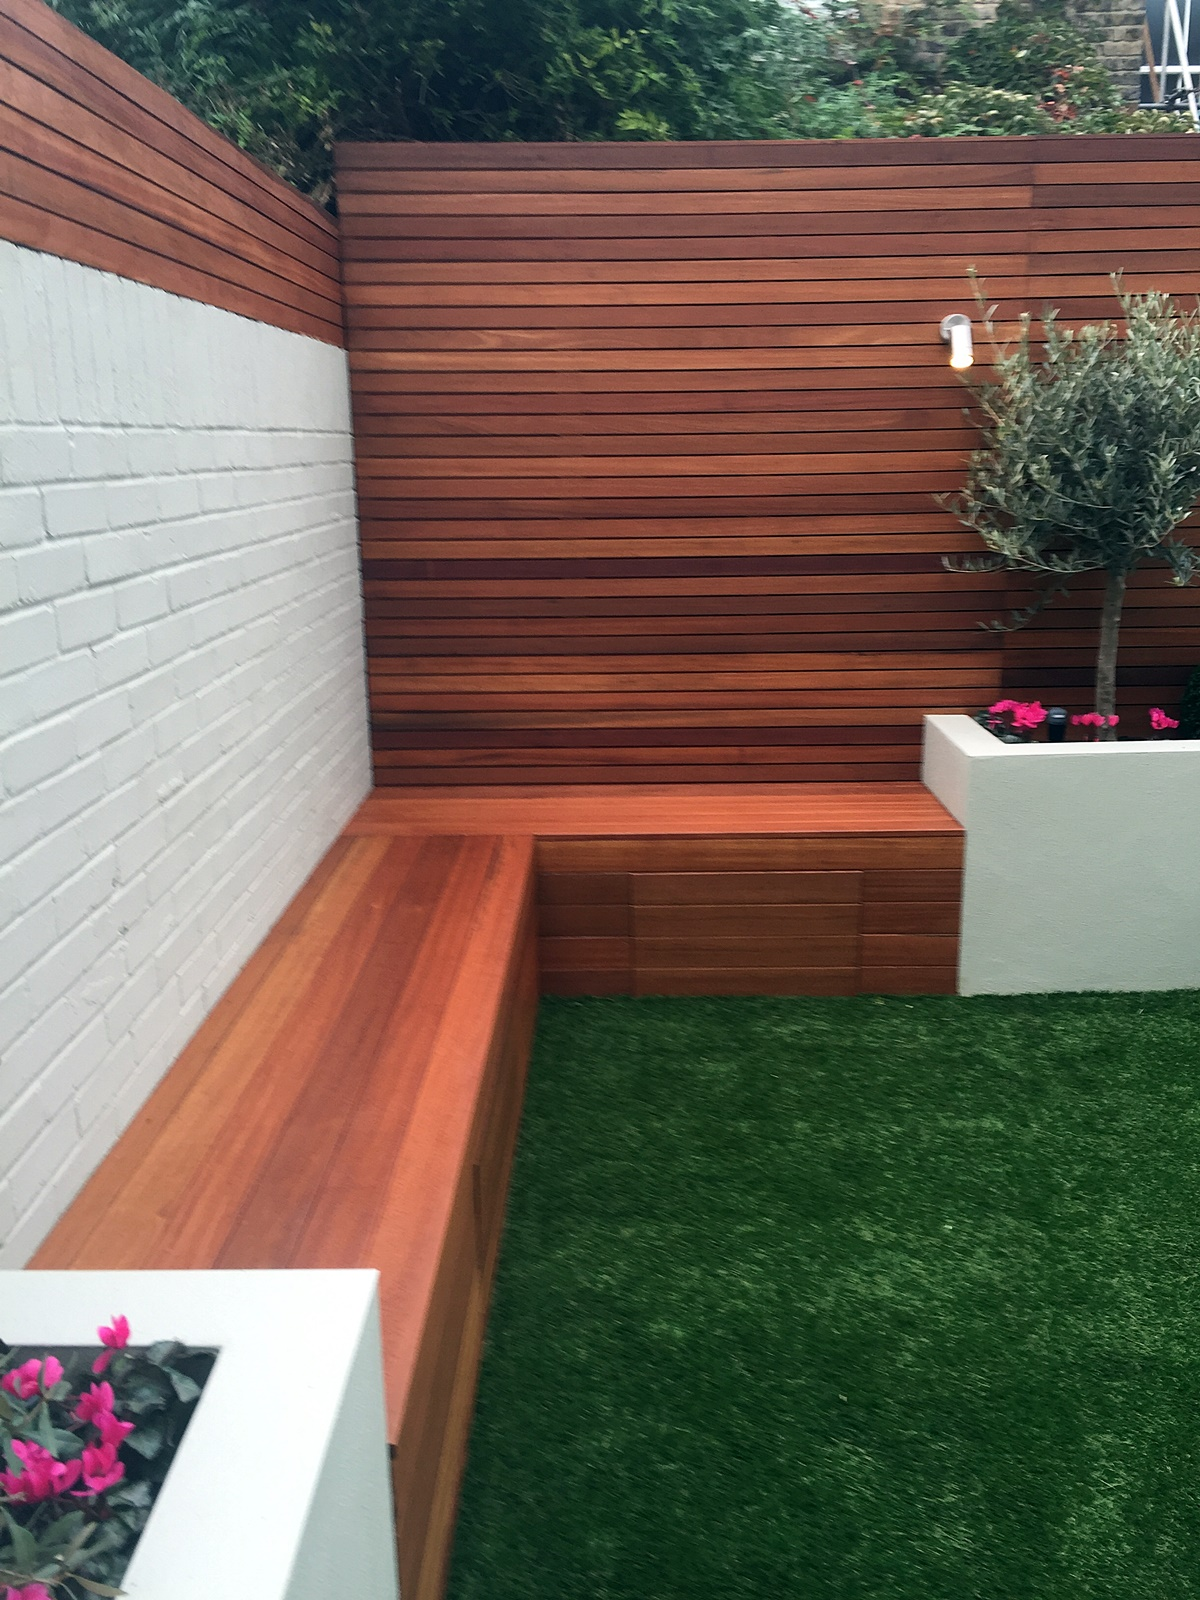 raised block render walls fake grass hardwood storage bench olive tree privacy screen trellis battersea clapham balham wandsworth fulham chelsea london